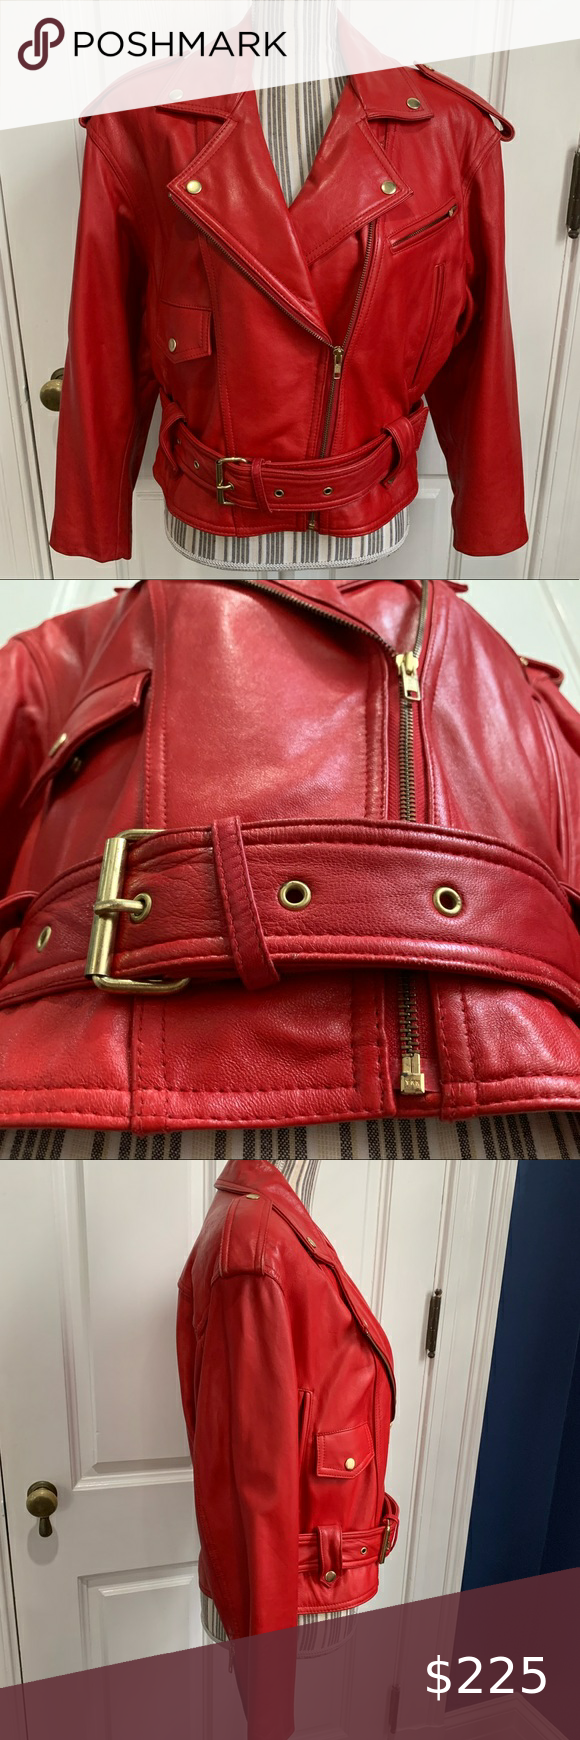 Wilson S Cropped Red Leather Jacket Small Moto Wilson S Small Jacket With Shoulder Pads 80s Bolero Sleeves Dry Clean Red Leather Jacket Leather Jacket Jackets [ 1740 x 580 Pixel ]